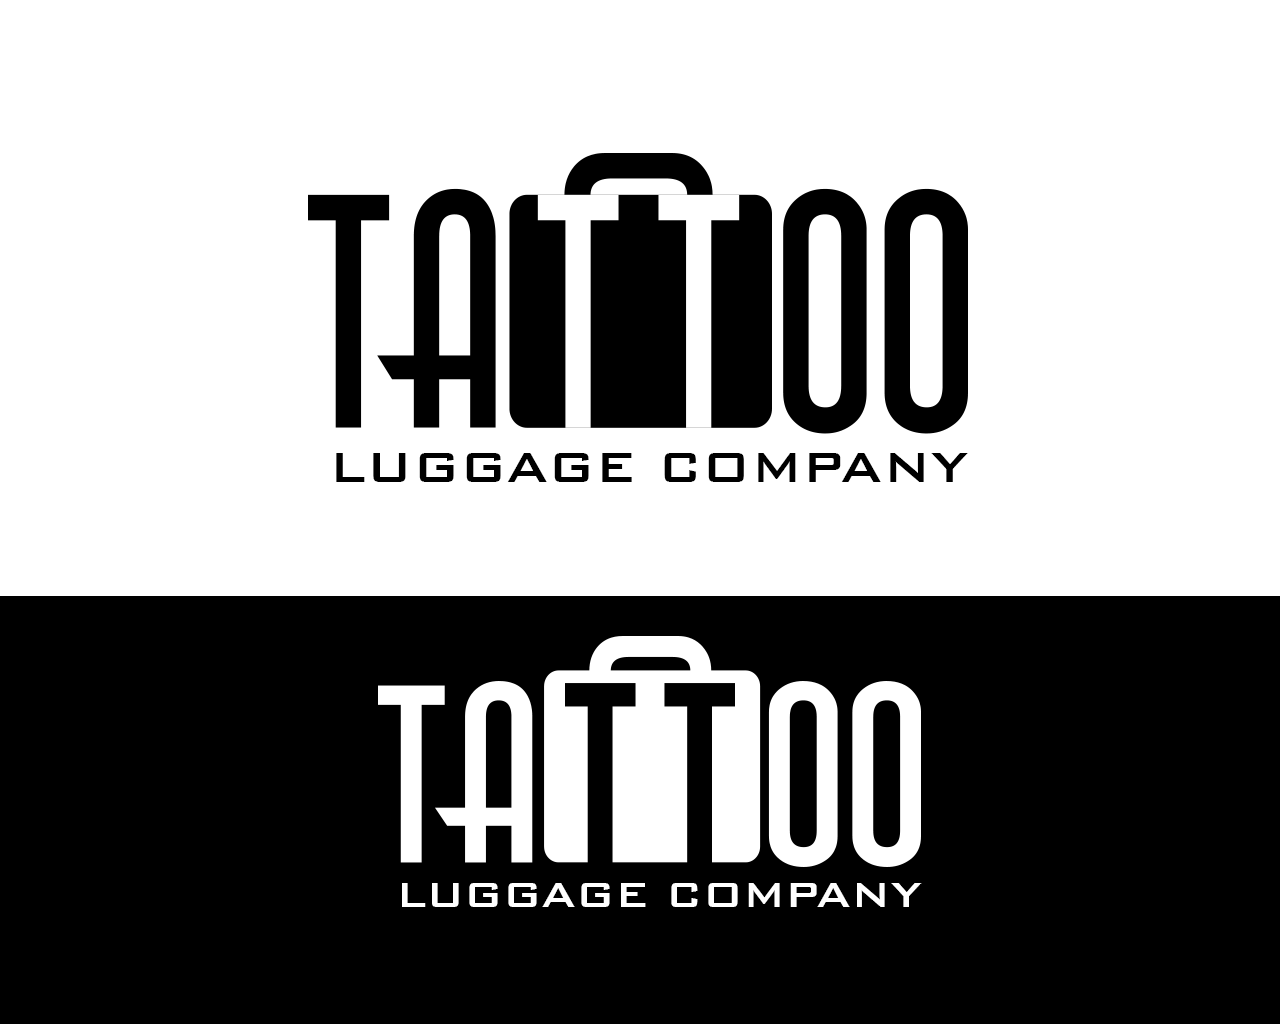 Logo Design by philipprince - Entry No. 69 in the Logo Design Contest Artistic Logo Design for Tattoo Luggage Company.